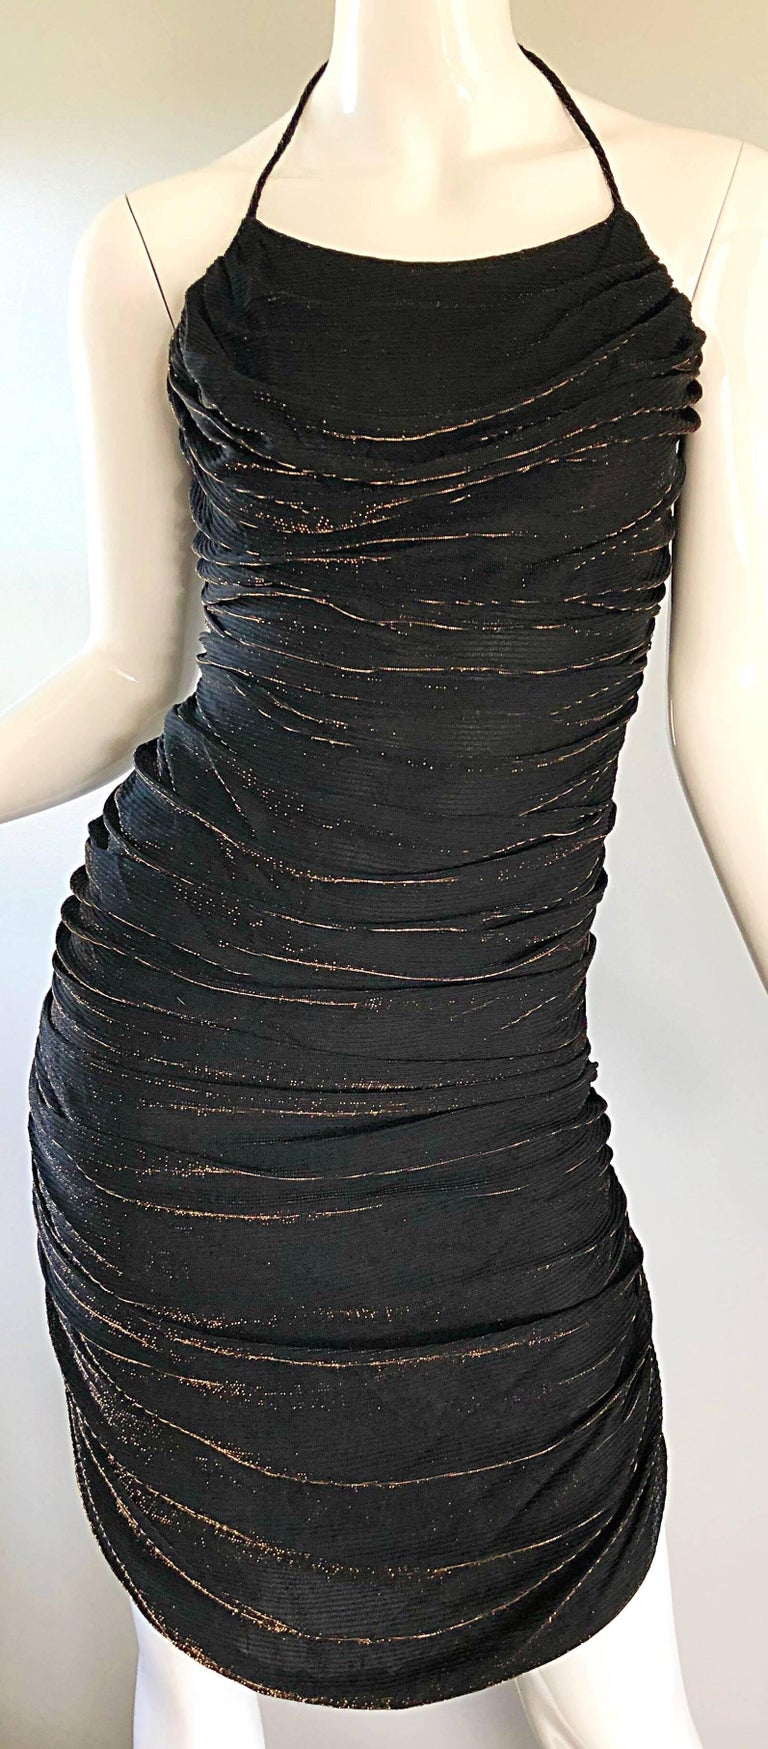 Sexy 1970s SAMIR black and bronze metallic ruched halter dress! Features flattering ruching body that stretches to fit. Body hugging fit looks fantastic on! Hidden zipper up the side. Lots of attention to detail. Great Studio 54 disco party dress,